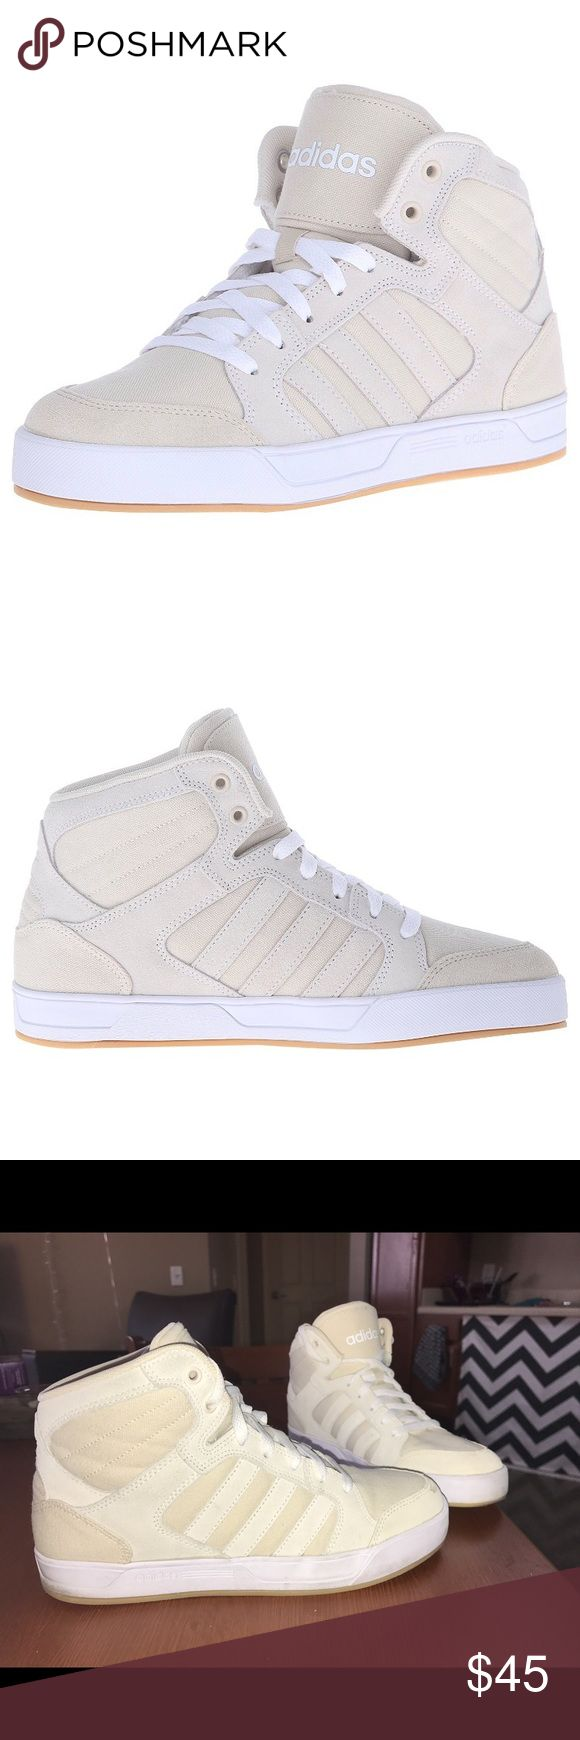 "adidas NEO Women's Raleigh Mid W Casual Sneaker adidas high top sneaker! Only worn once for a short amount of time - they just are too small on my feet because I bought the wrong size. They fit pretty true to size (8.5). Colors are white and a super cool tan/cream color. Rubber sole. Shaft measures approximately 4.5"" from arch. Full grain leather upper. Good support and comfortable. Adidas Shoes Sneakers"